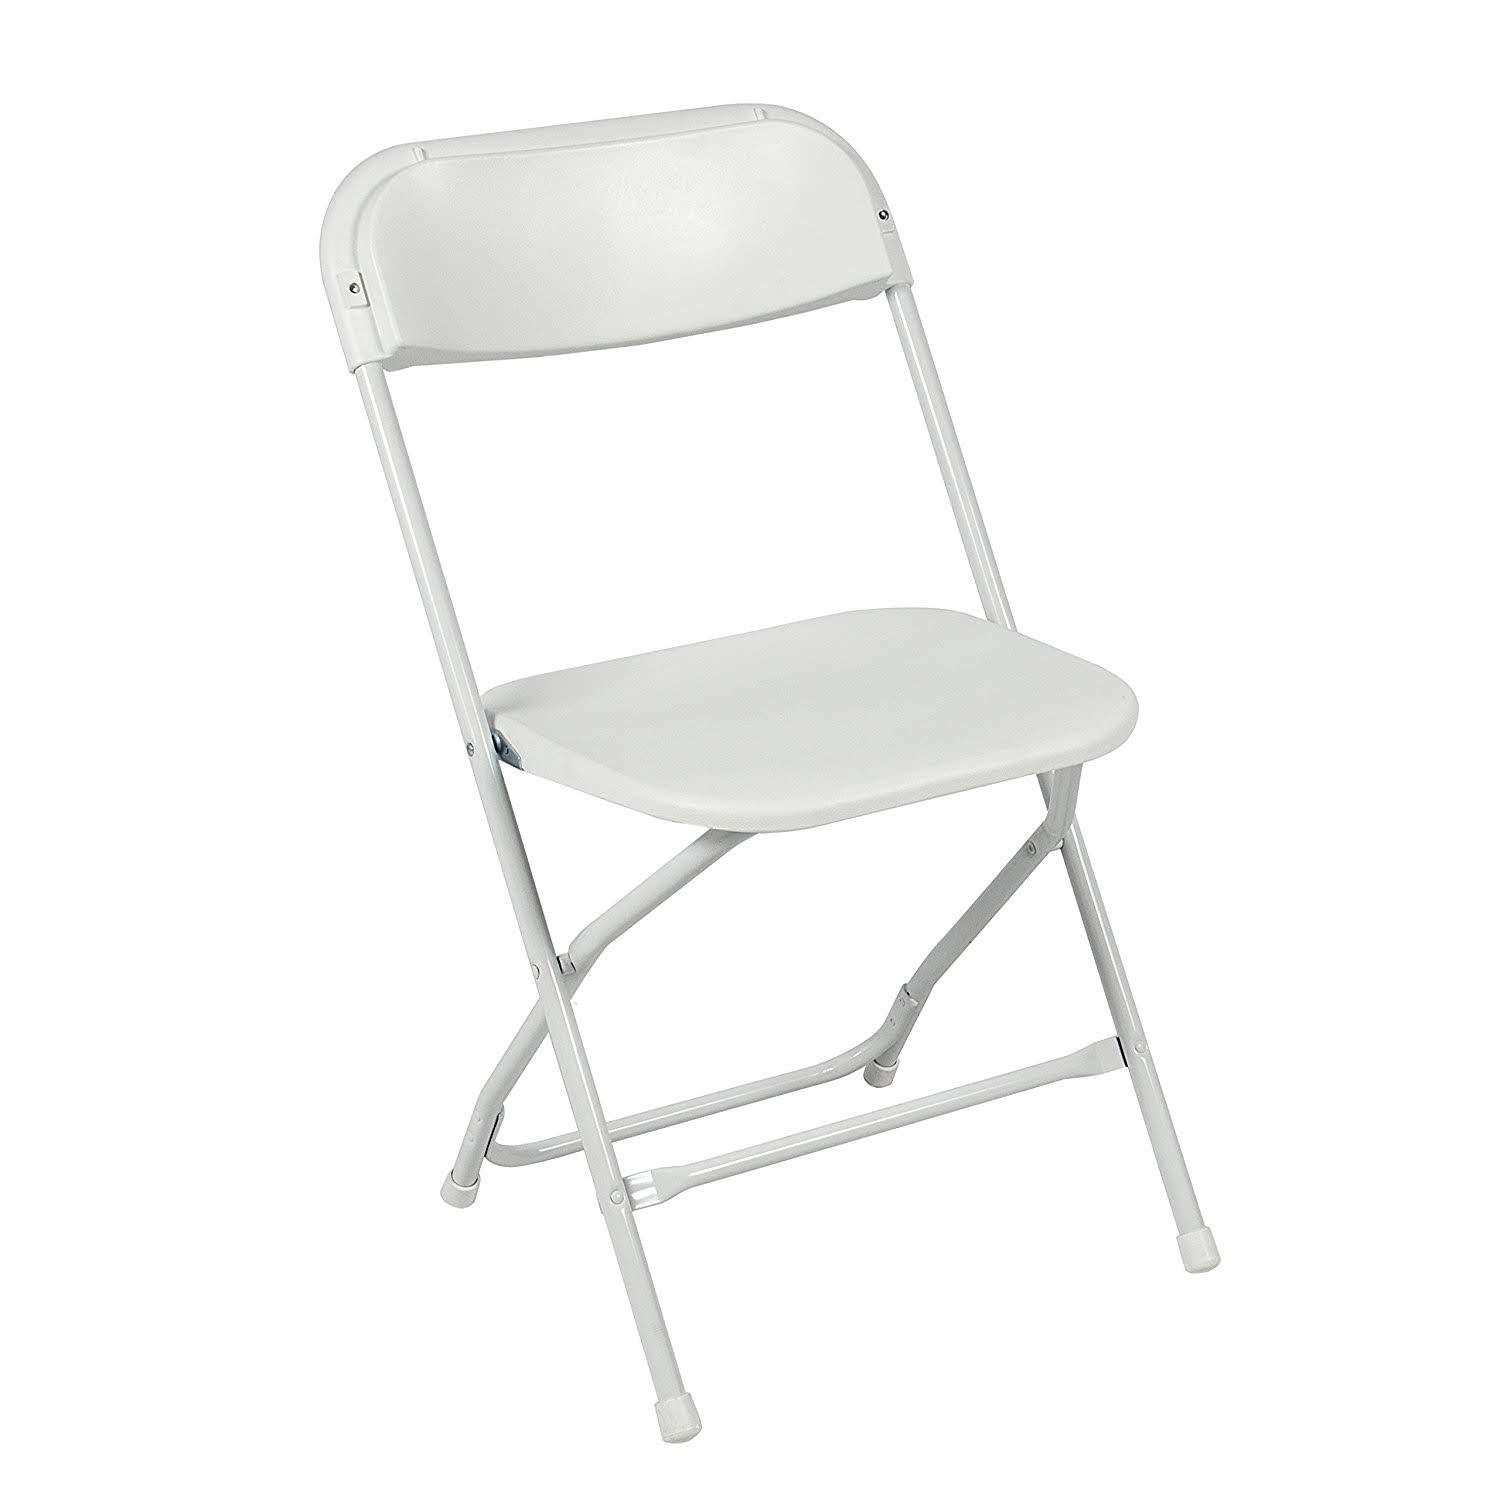 LV Taco - folding chair rental